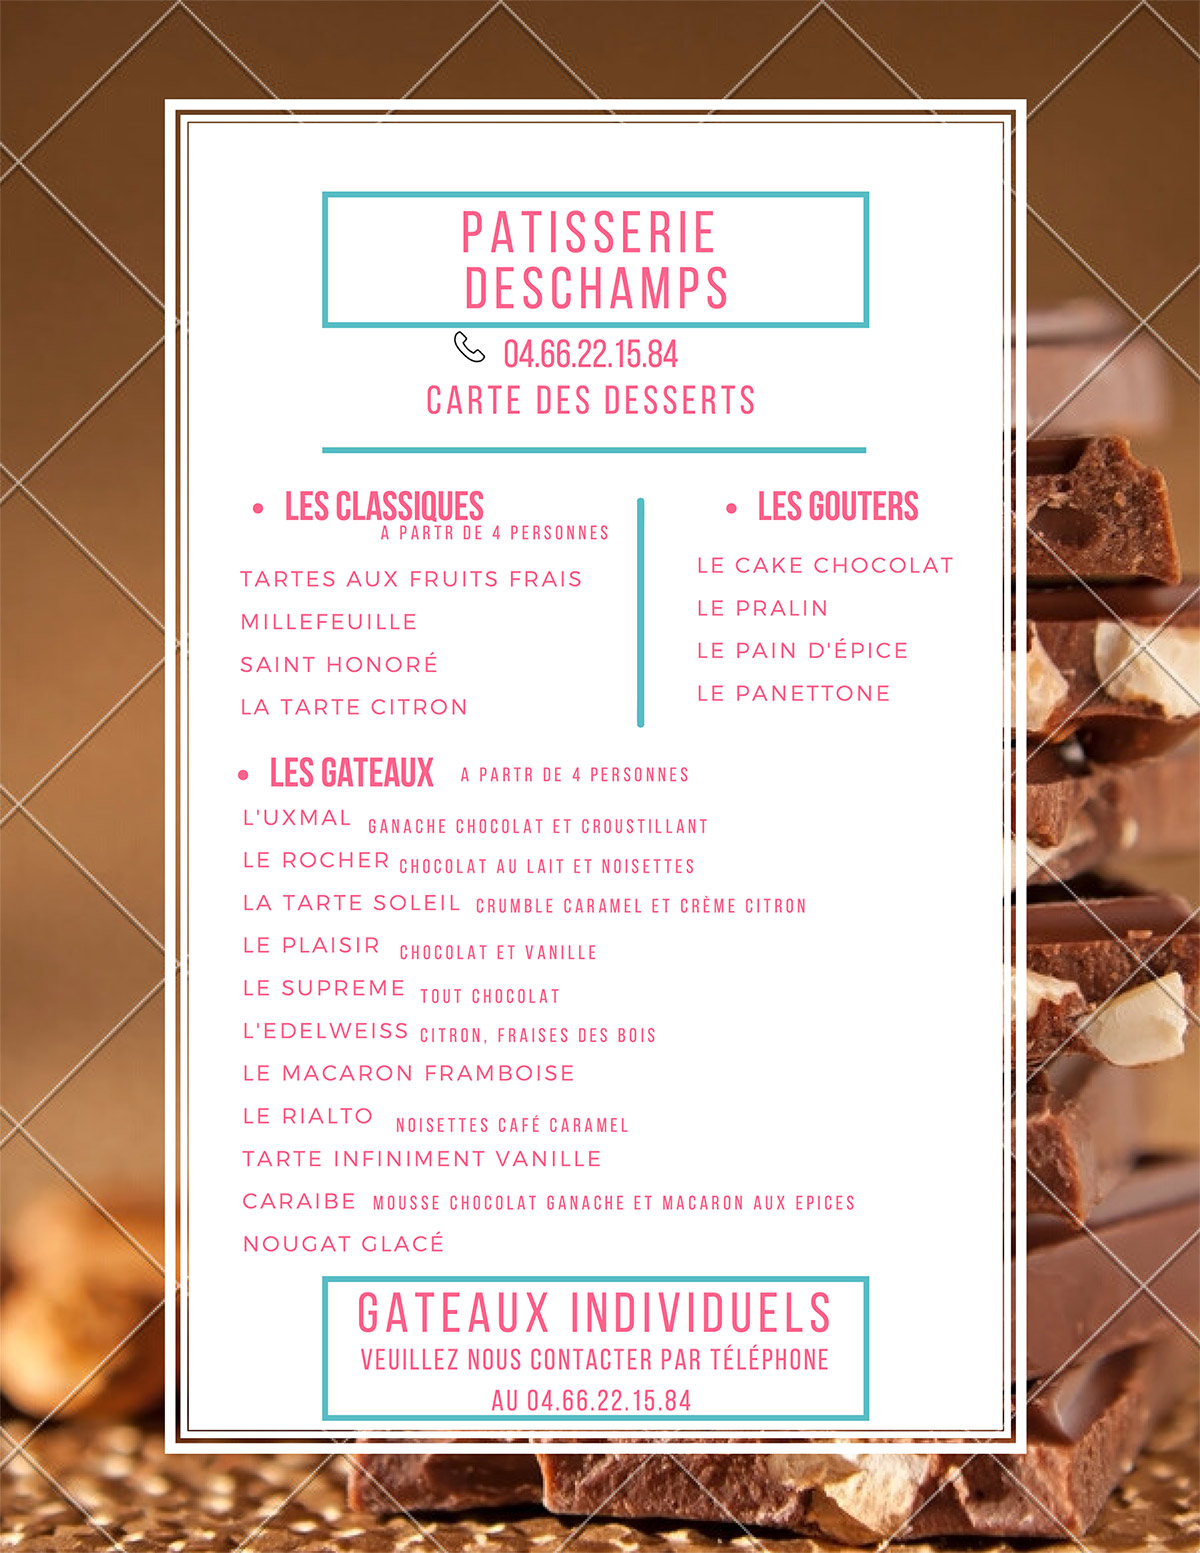 paques-2020-deschamps-patisserie-uzes